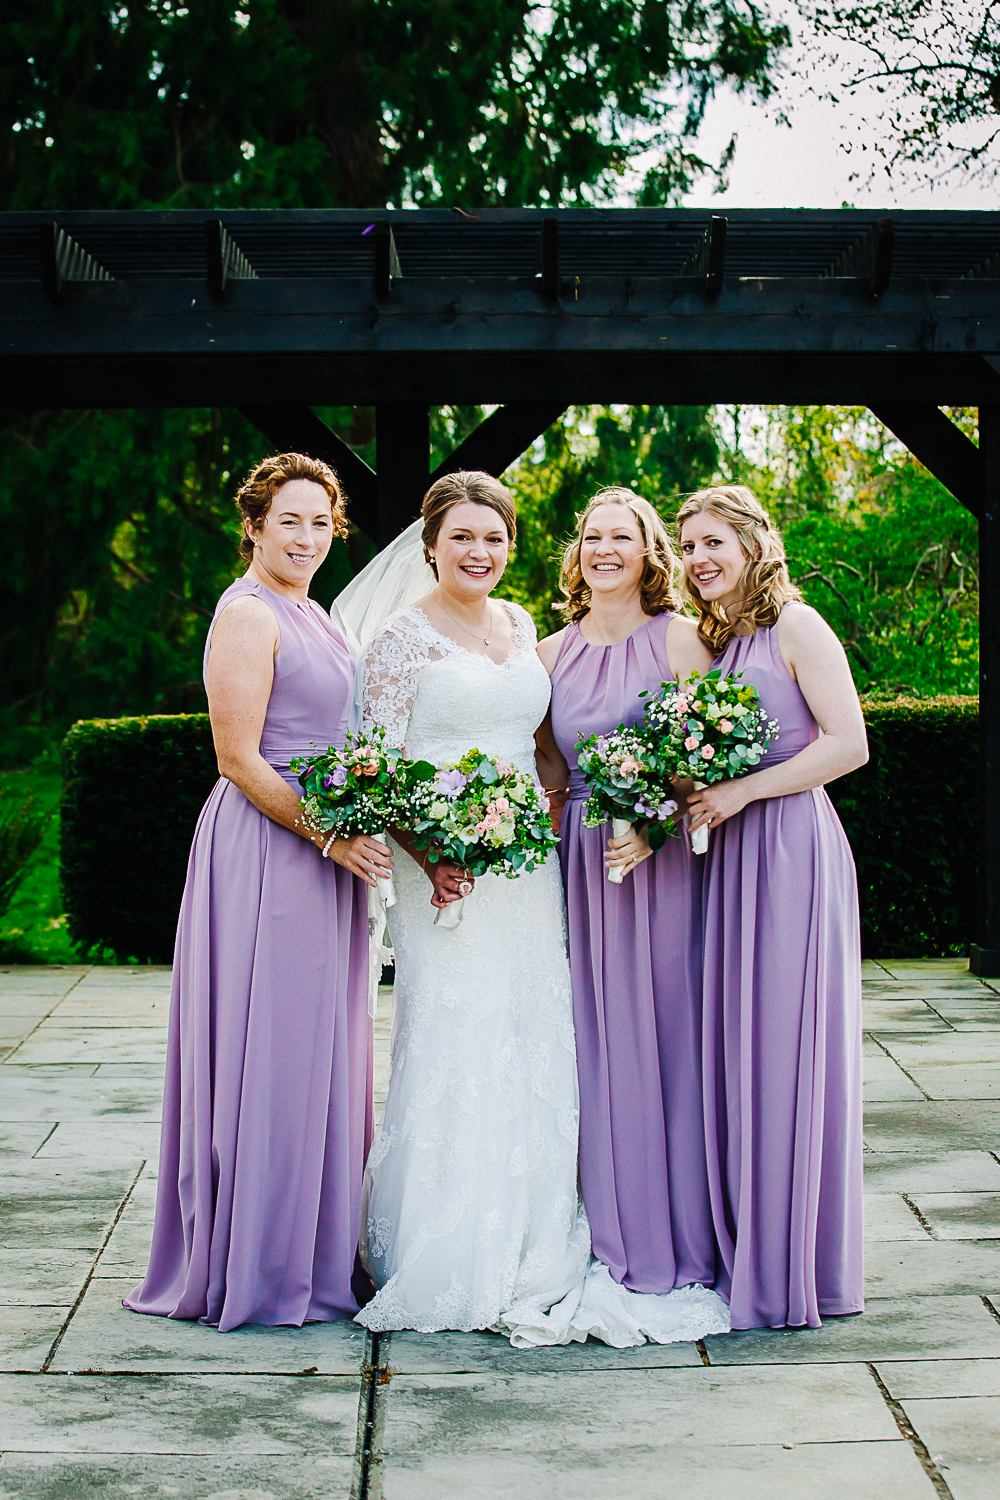 Bridesmaids in Lilac Dresses at Swynford Manor Wedding